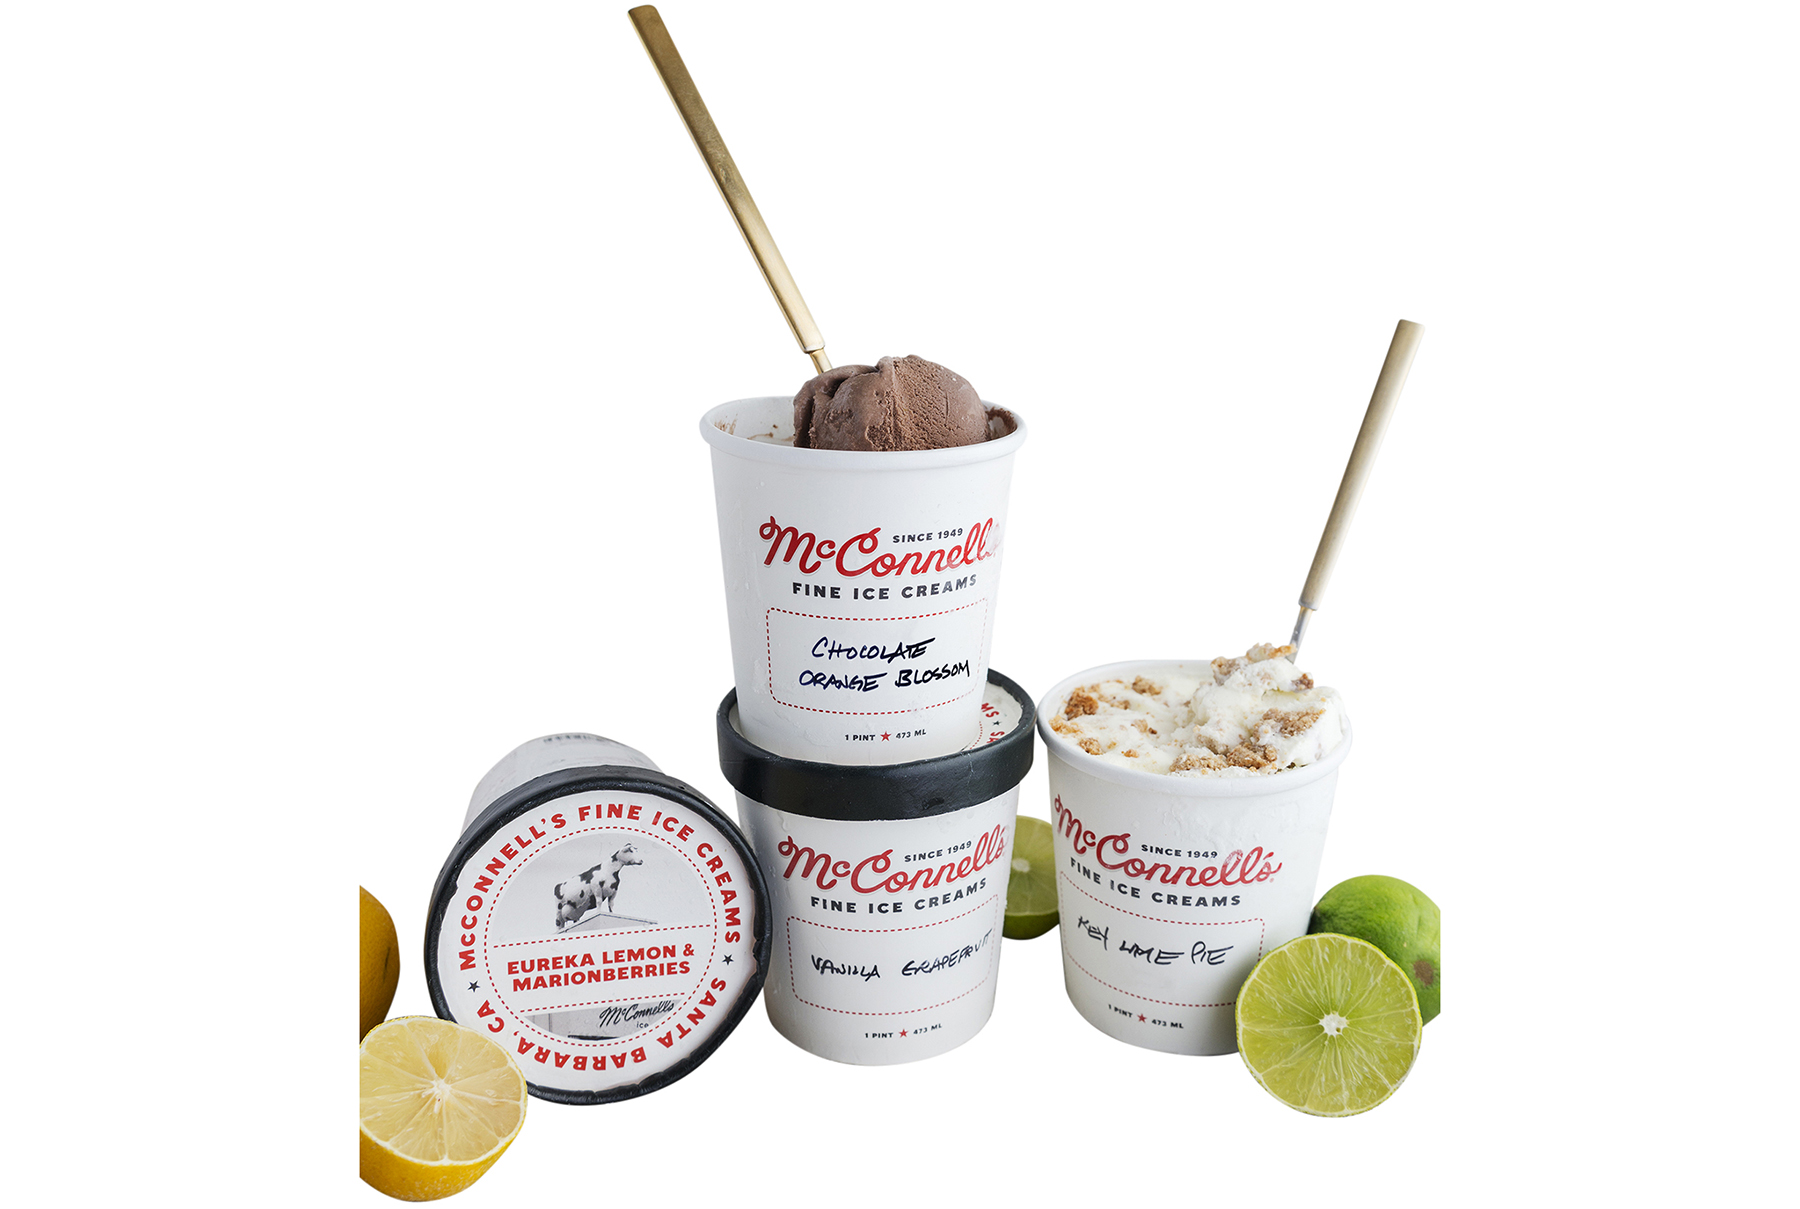 McConnell's Winter Citrus Ice Cream